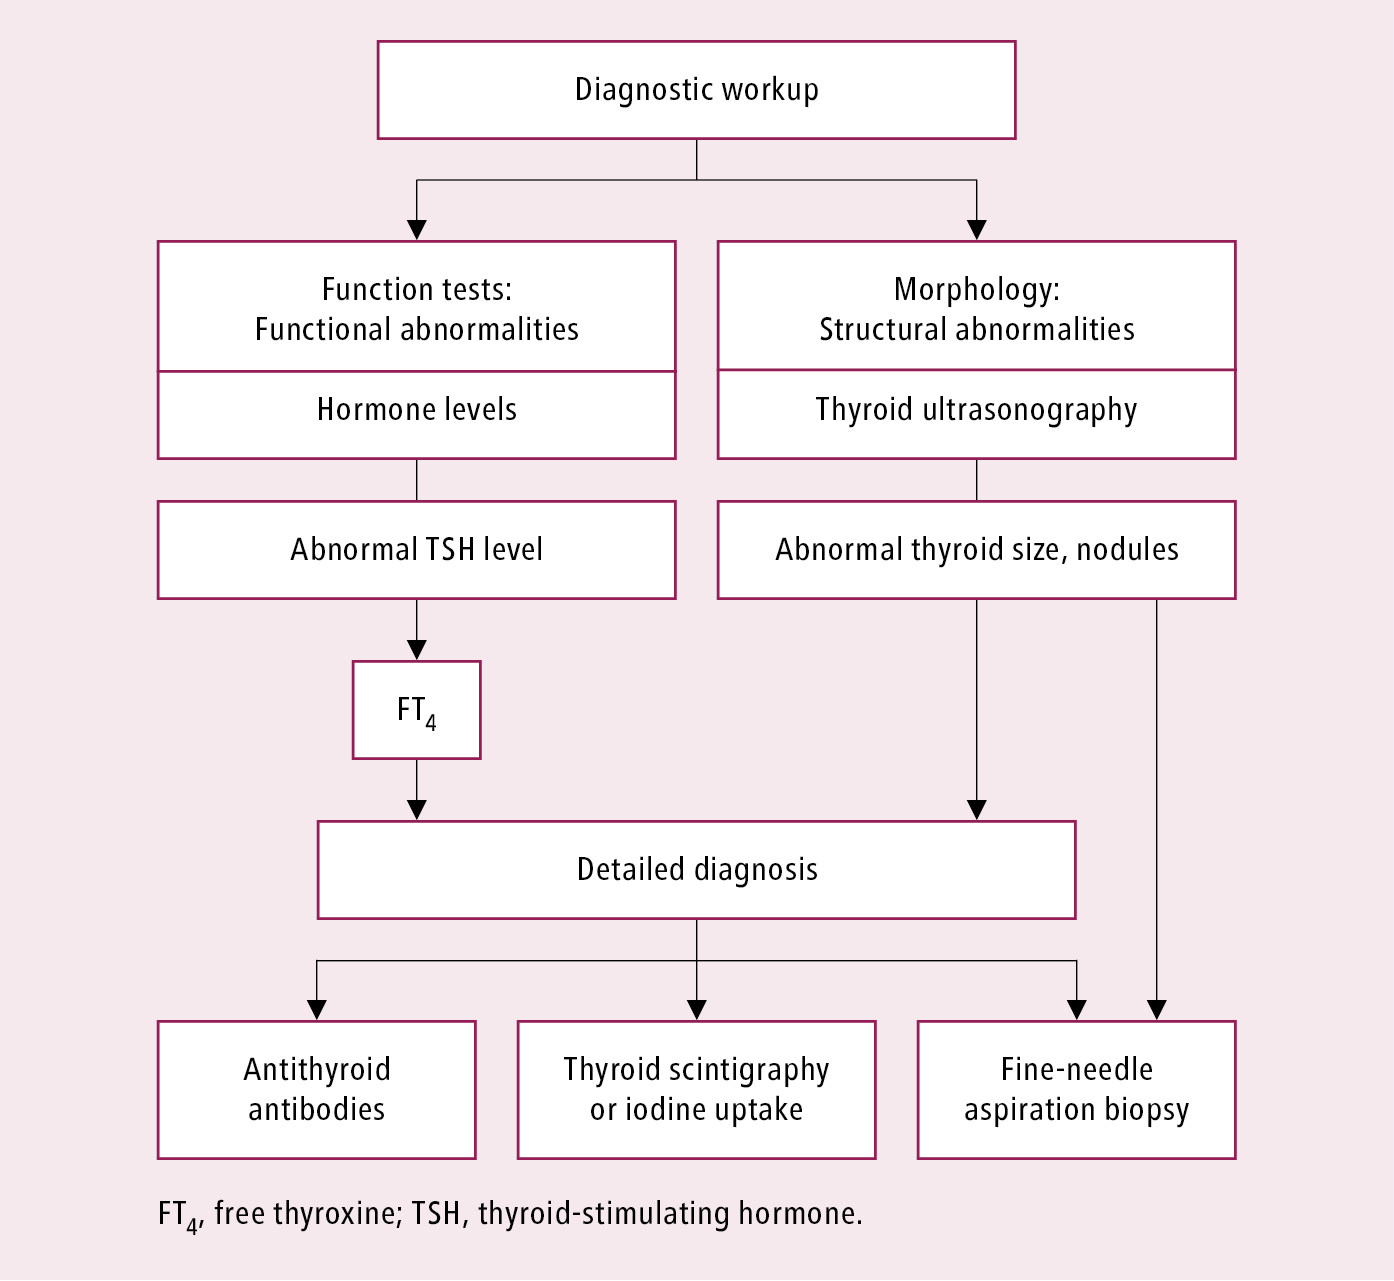 Figure 031_1_0719.  General diagnostic algorithm for disorders of the thyroid gland.